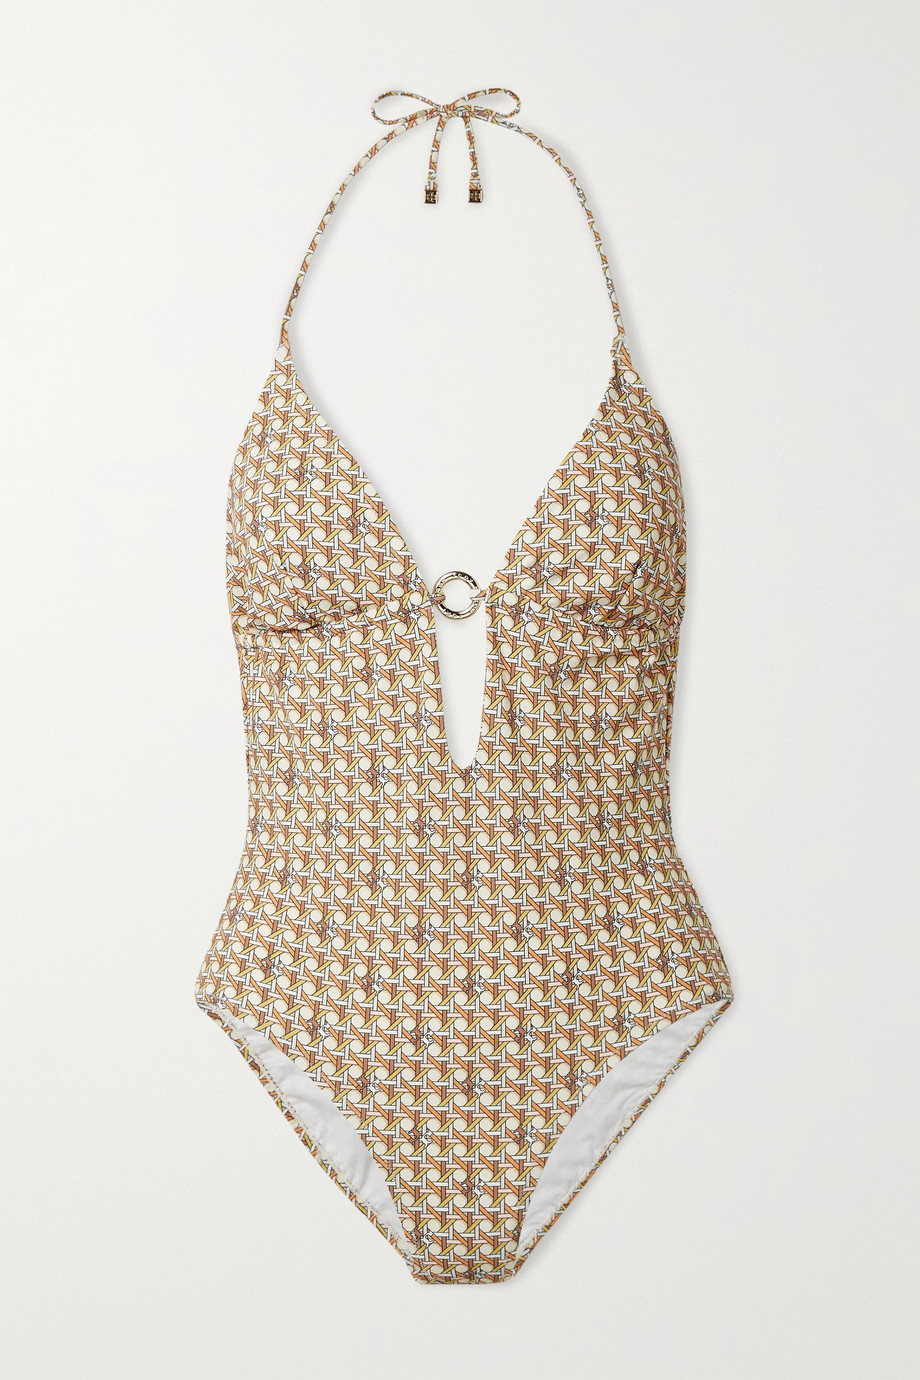 TORY BURCH Embellished printed halterneck swimsuit